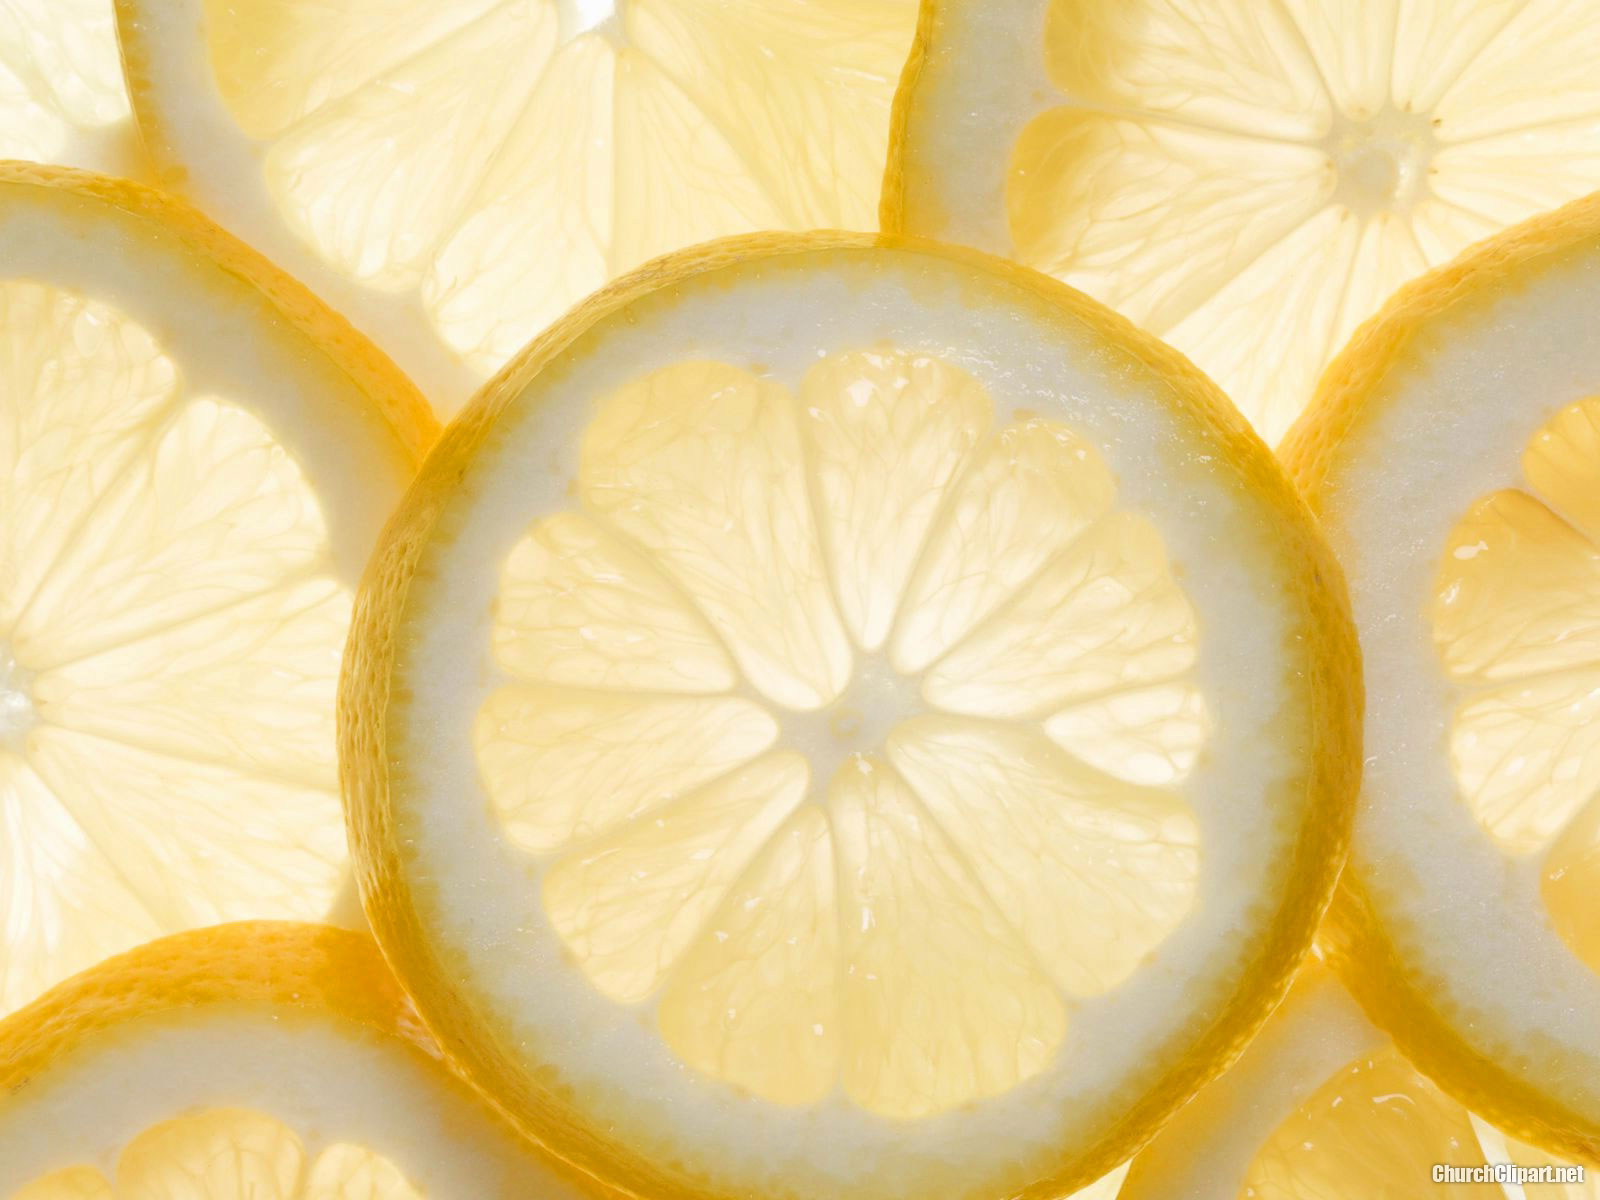 Fresh Lemon Background for Powerpoint – Church Clipart